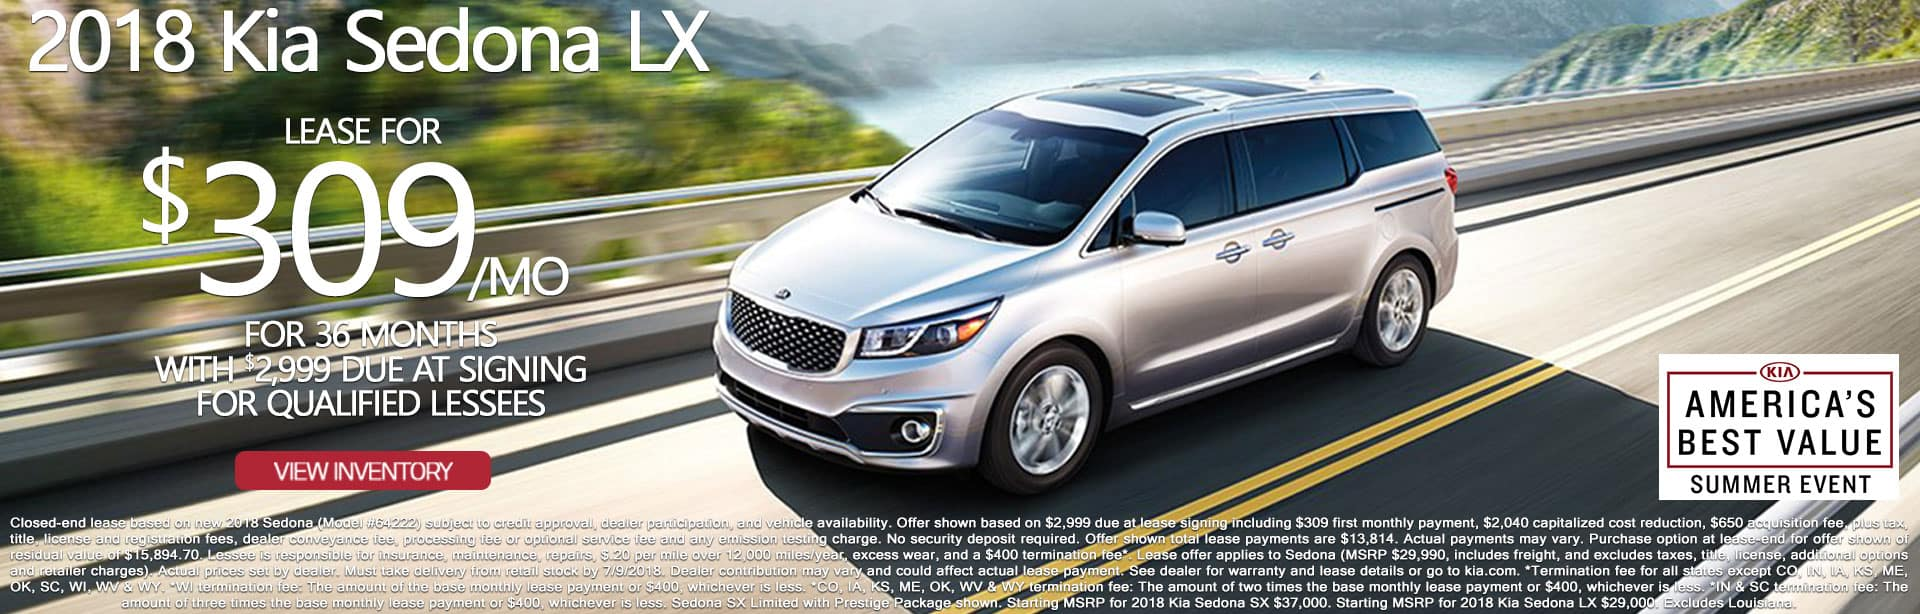 ahead places ny lease transitowne buffalo kia pull view